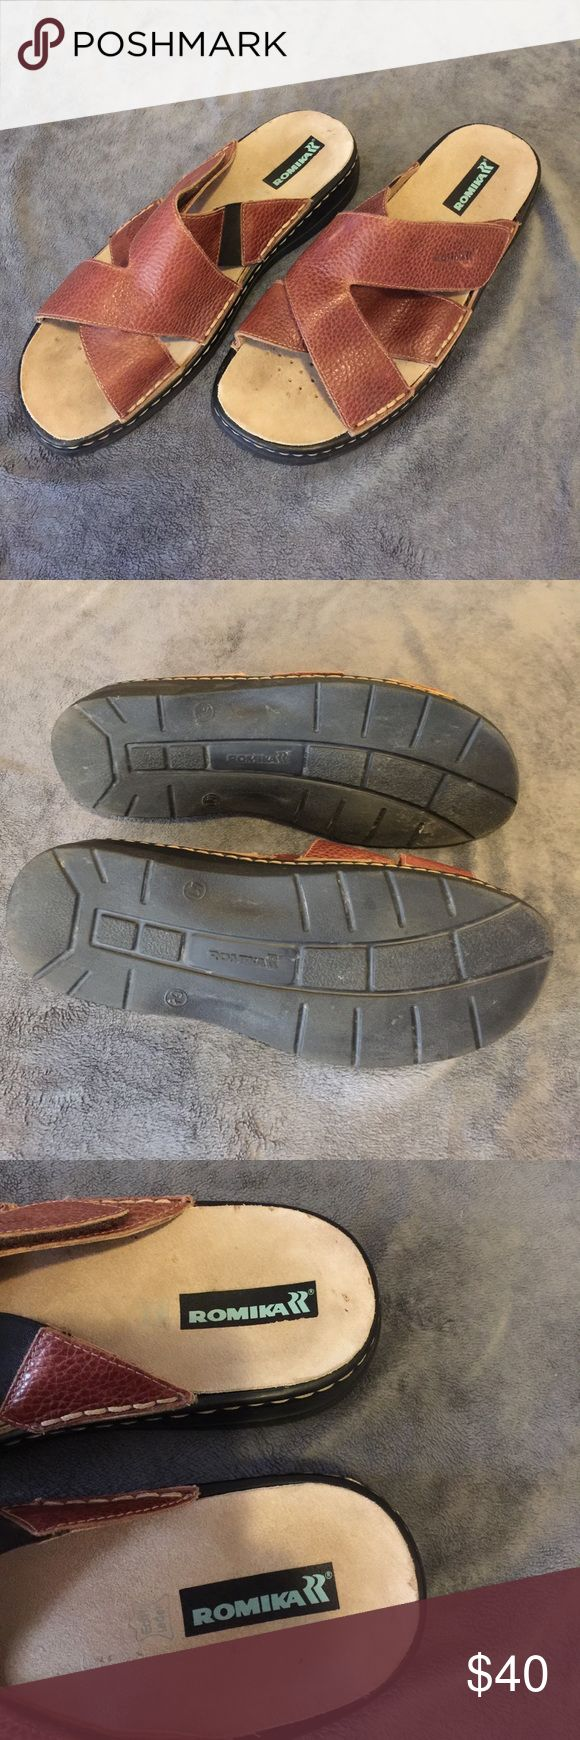 Romika men's Sandals. Size 47 ~ size men's 13 Great men's sandals leather foot pads and a good sole. Adjustable Velcro straps for a tight fit. Size 47 which is equal to a men's size 13 Romika Shoes Sandals & Flip-Flops